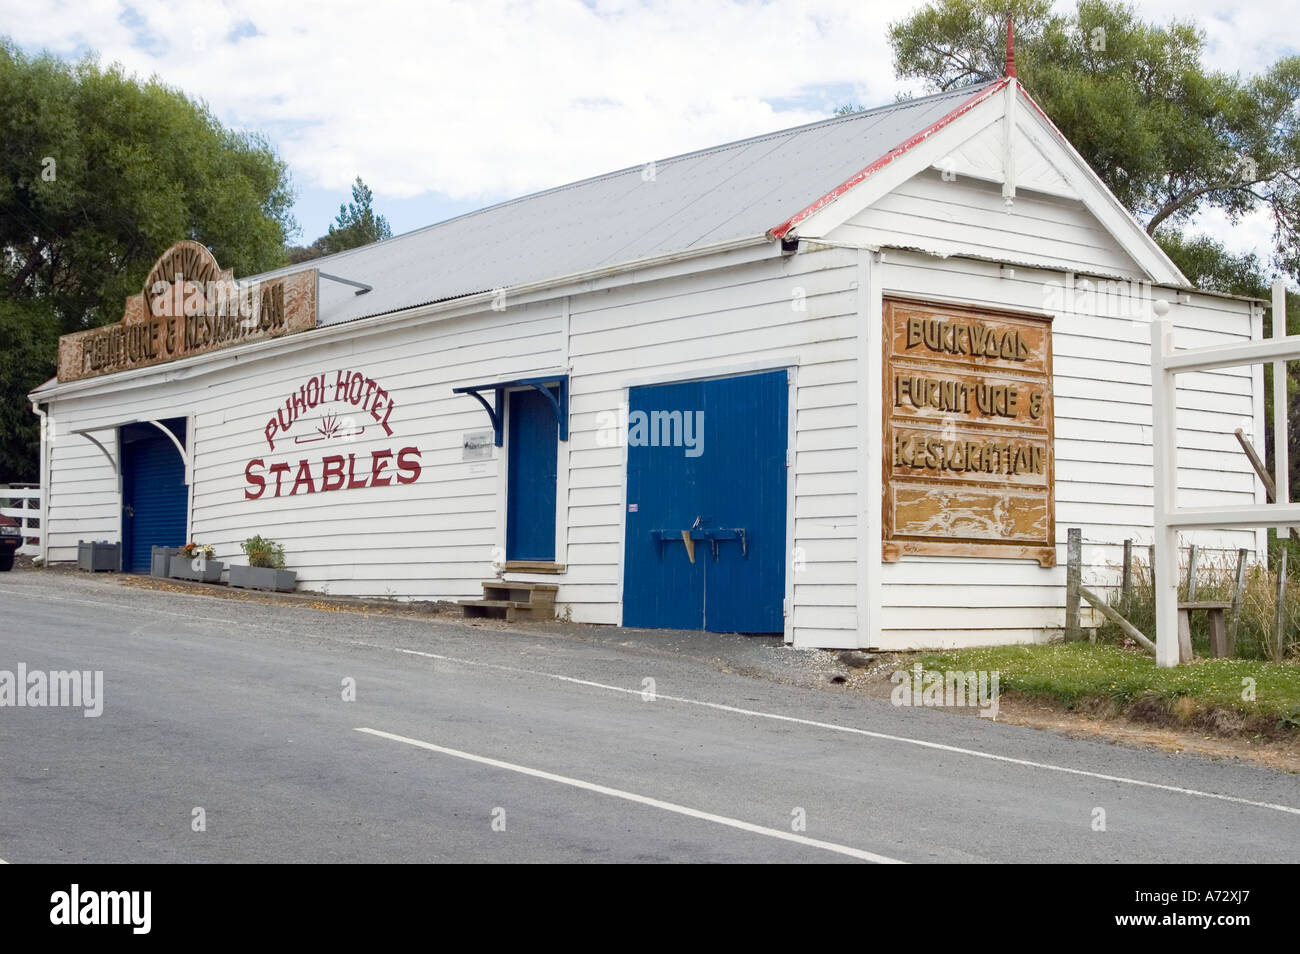 Building with sign showing stables at Puhoi